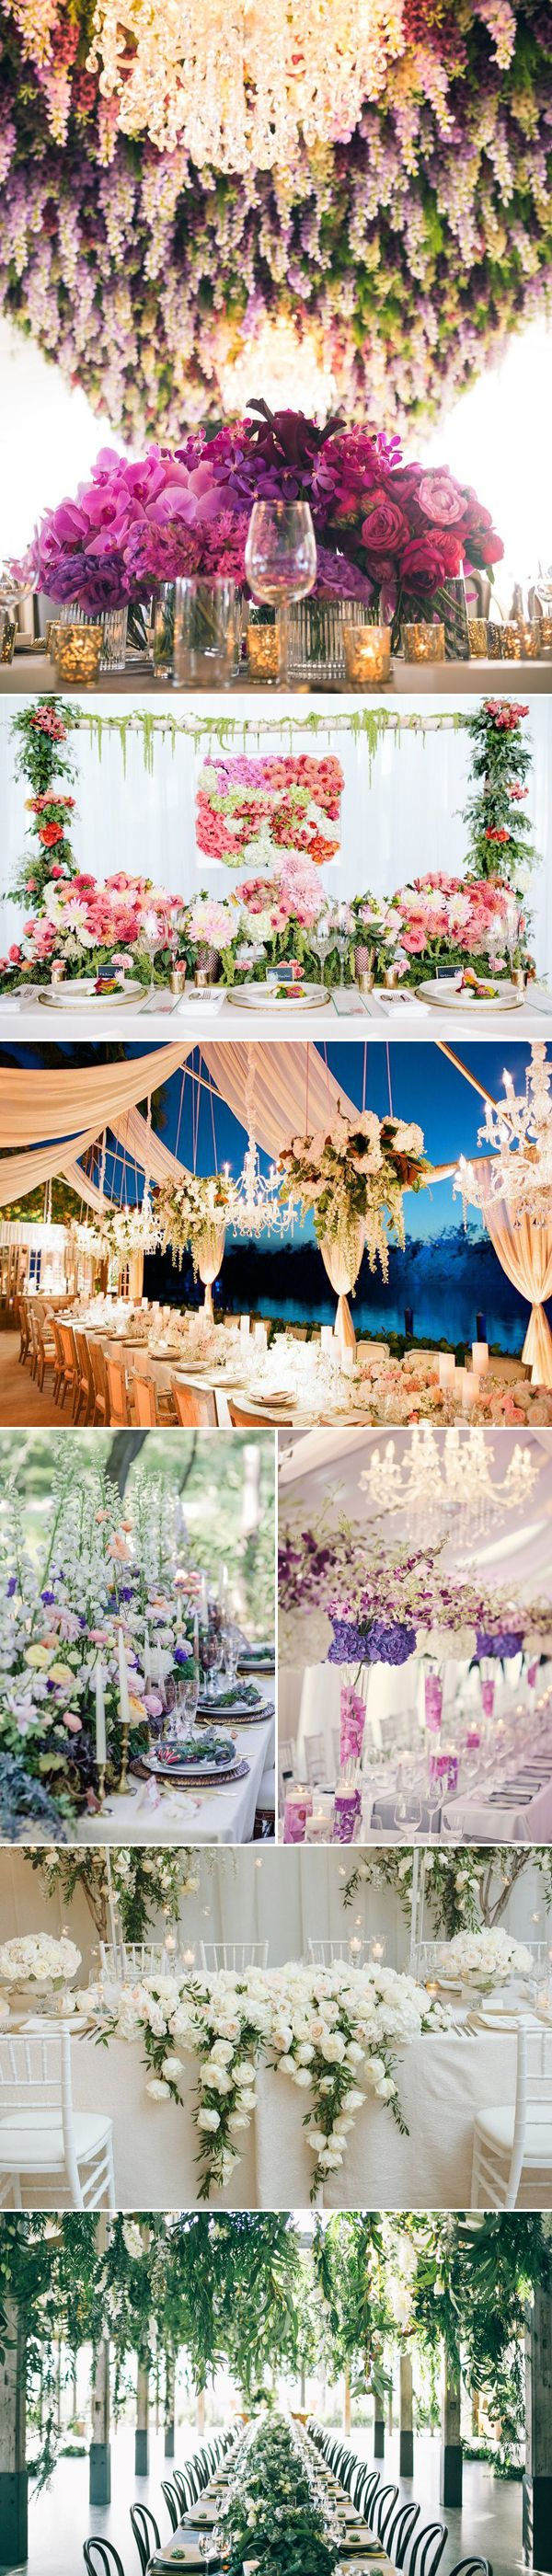 affordable wedding reception venues minnesota%0A    Stunning Ways to Decorate Your Wedding Venue with Flowers